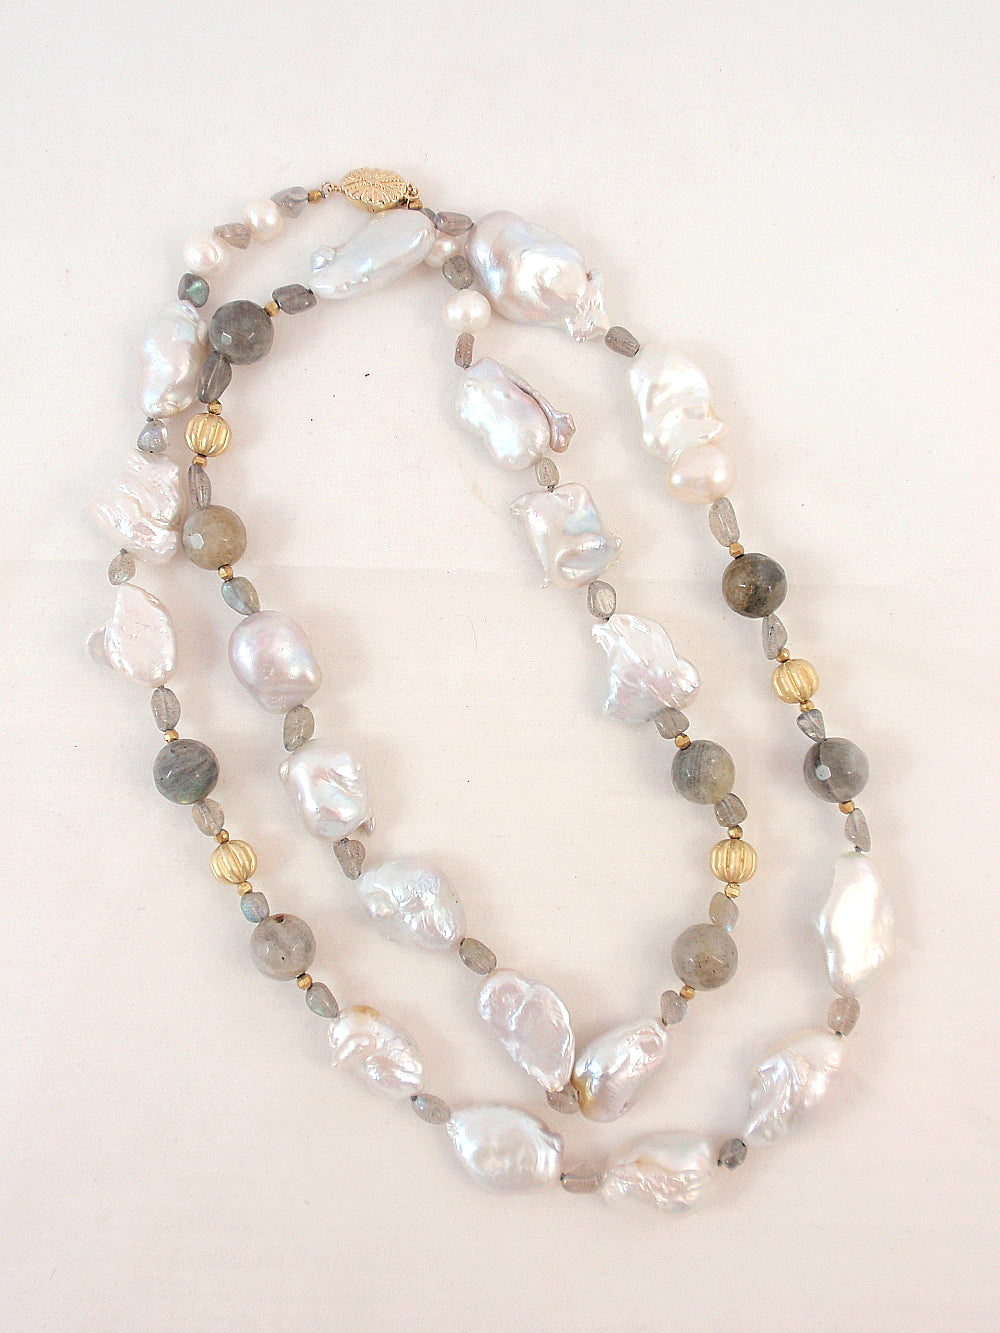 The Island Pearl Baroque Pearls and Labradorite